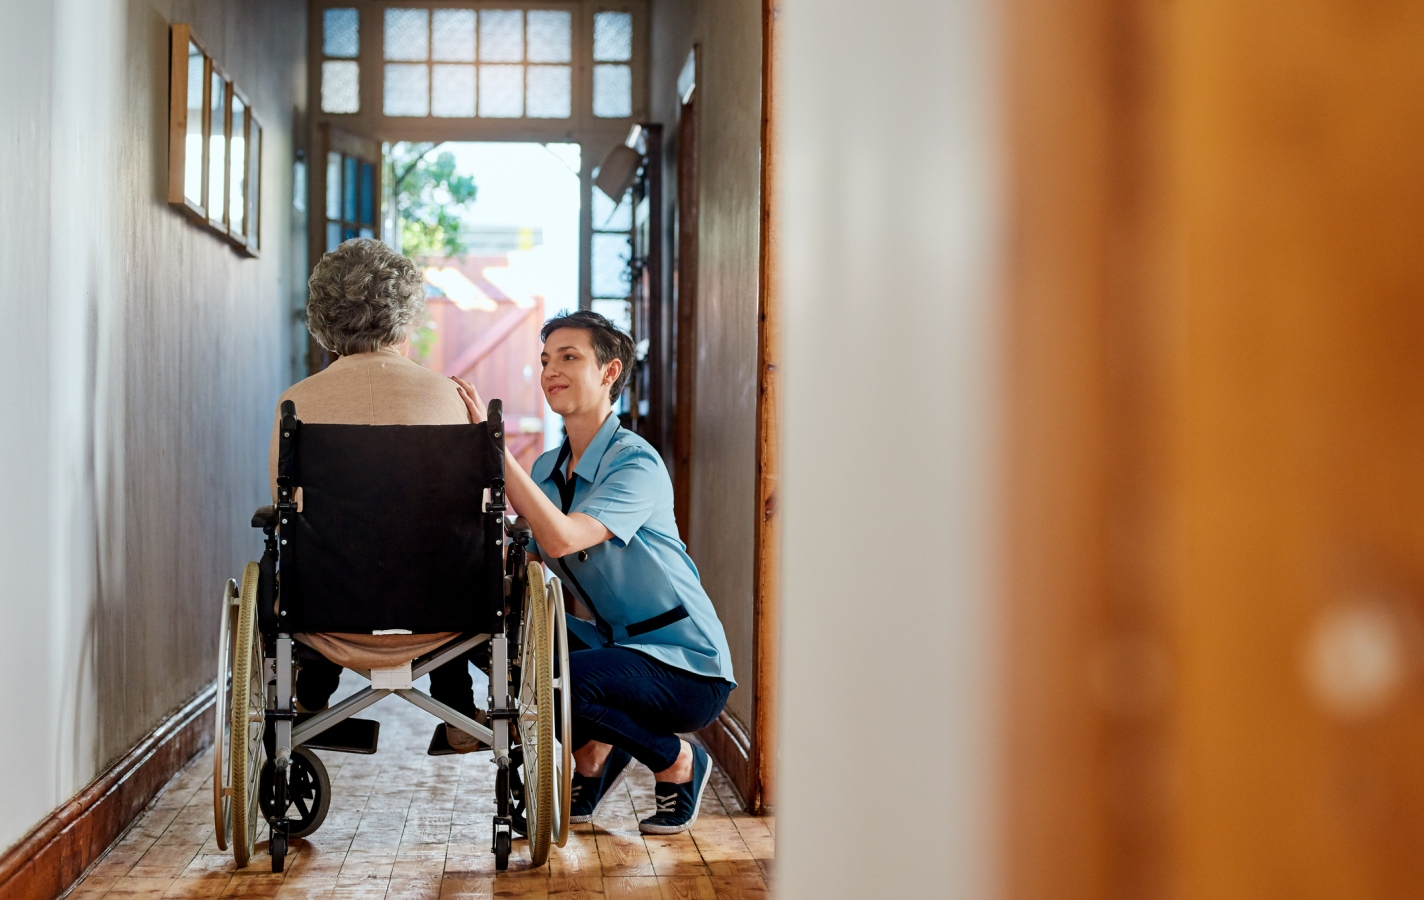 Young care giver crouching next to elderly woman in wheelchair